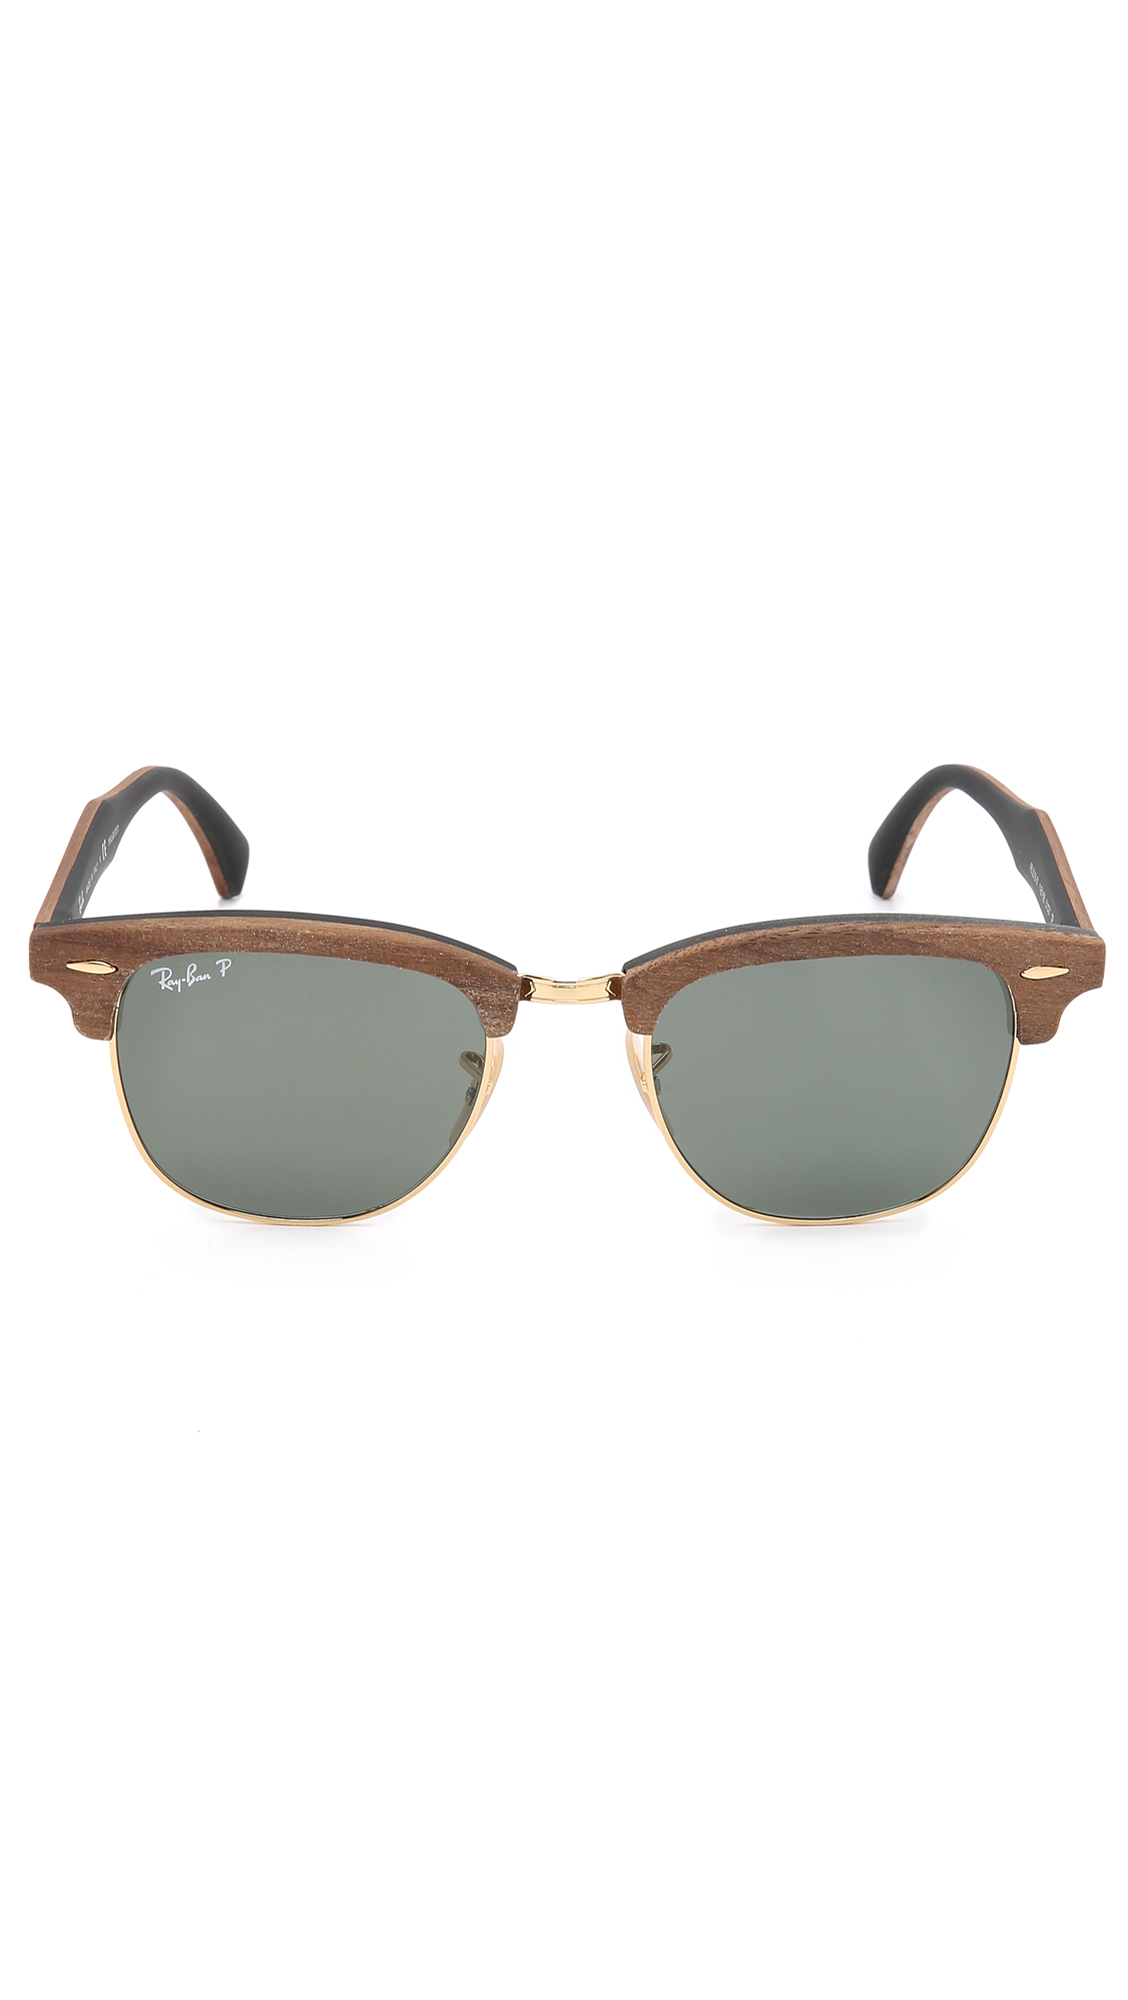 2019 wholesale ray bans nordstrom rack online 2019